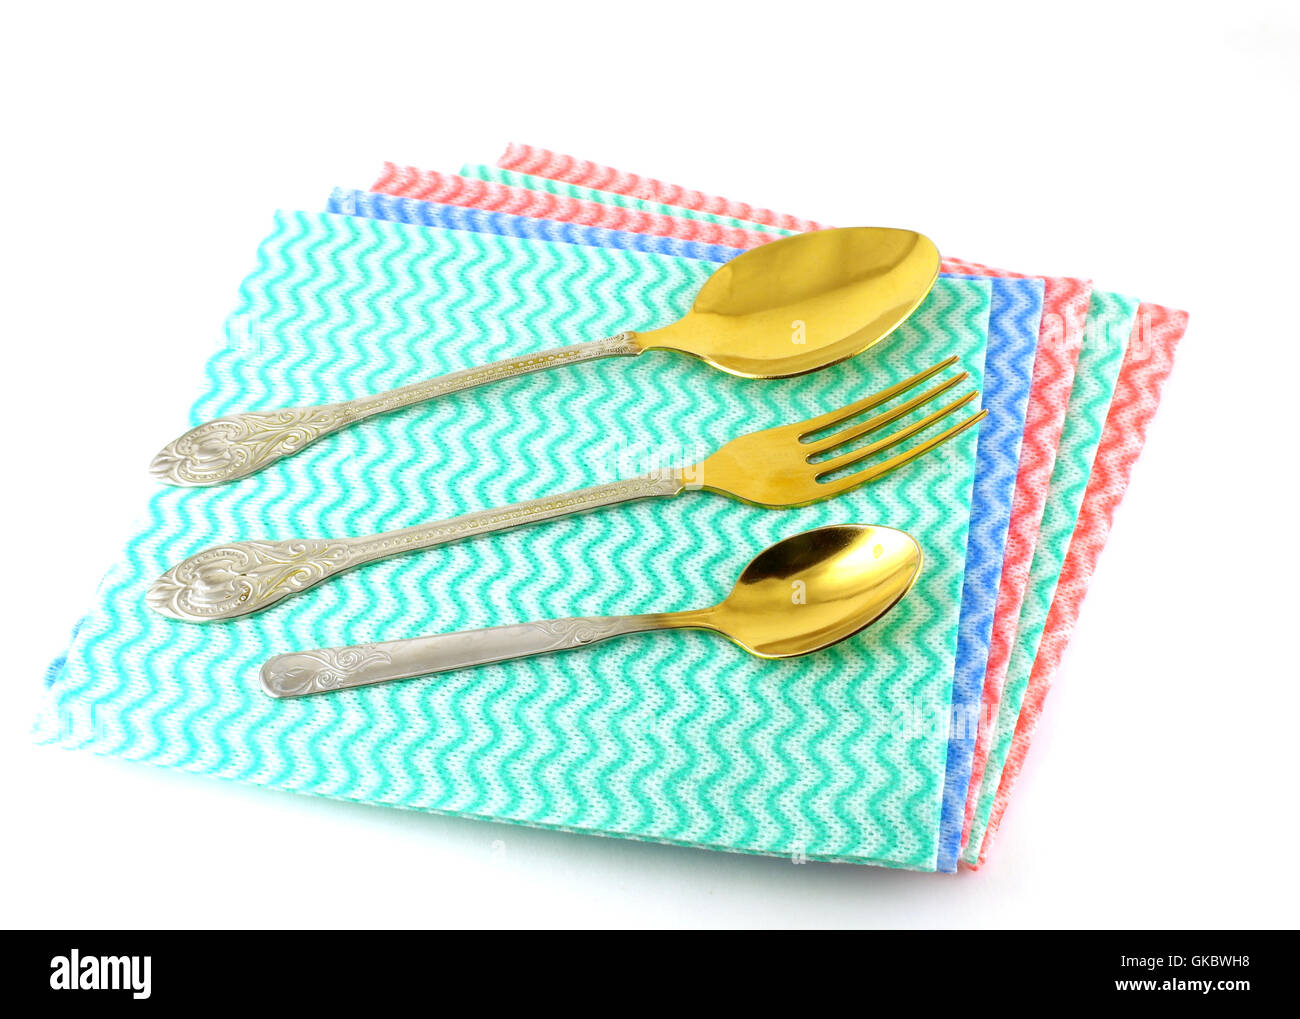 dusting tools. Tools Kitchen Cuisine - Stock Image Dusting